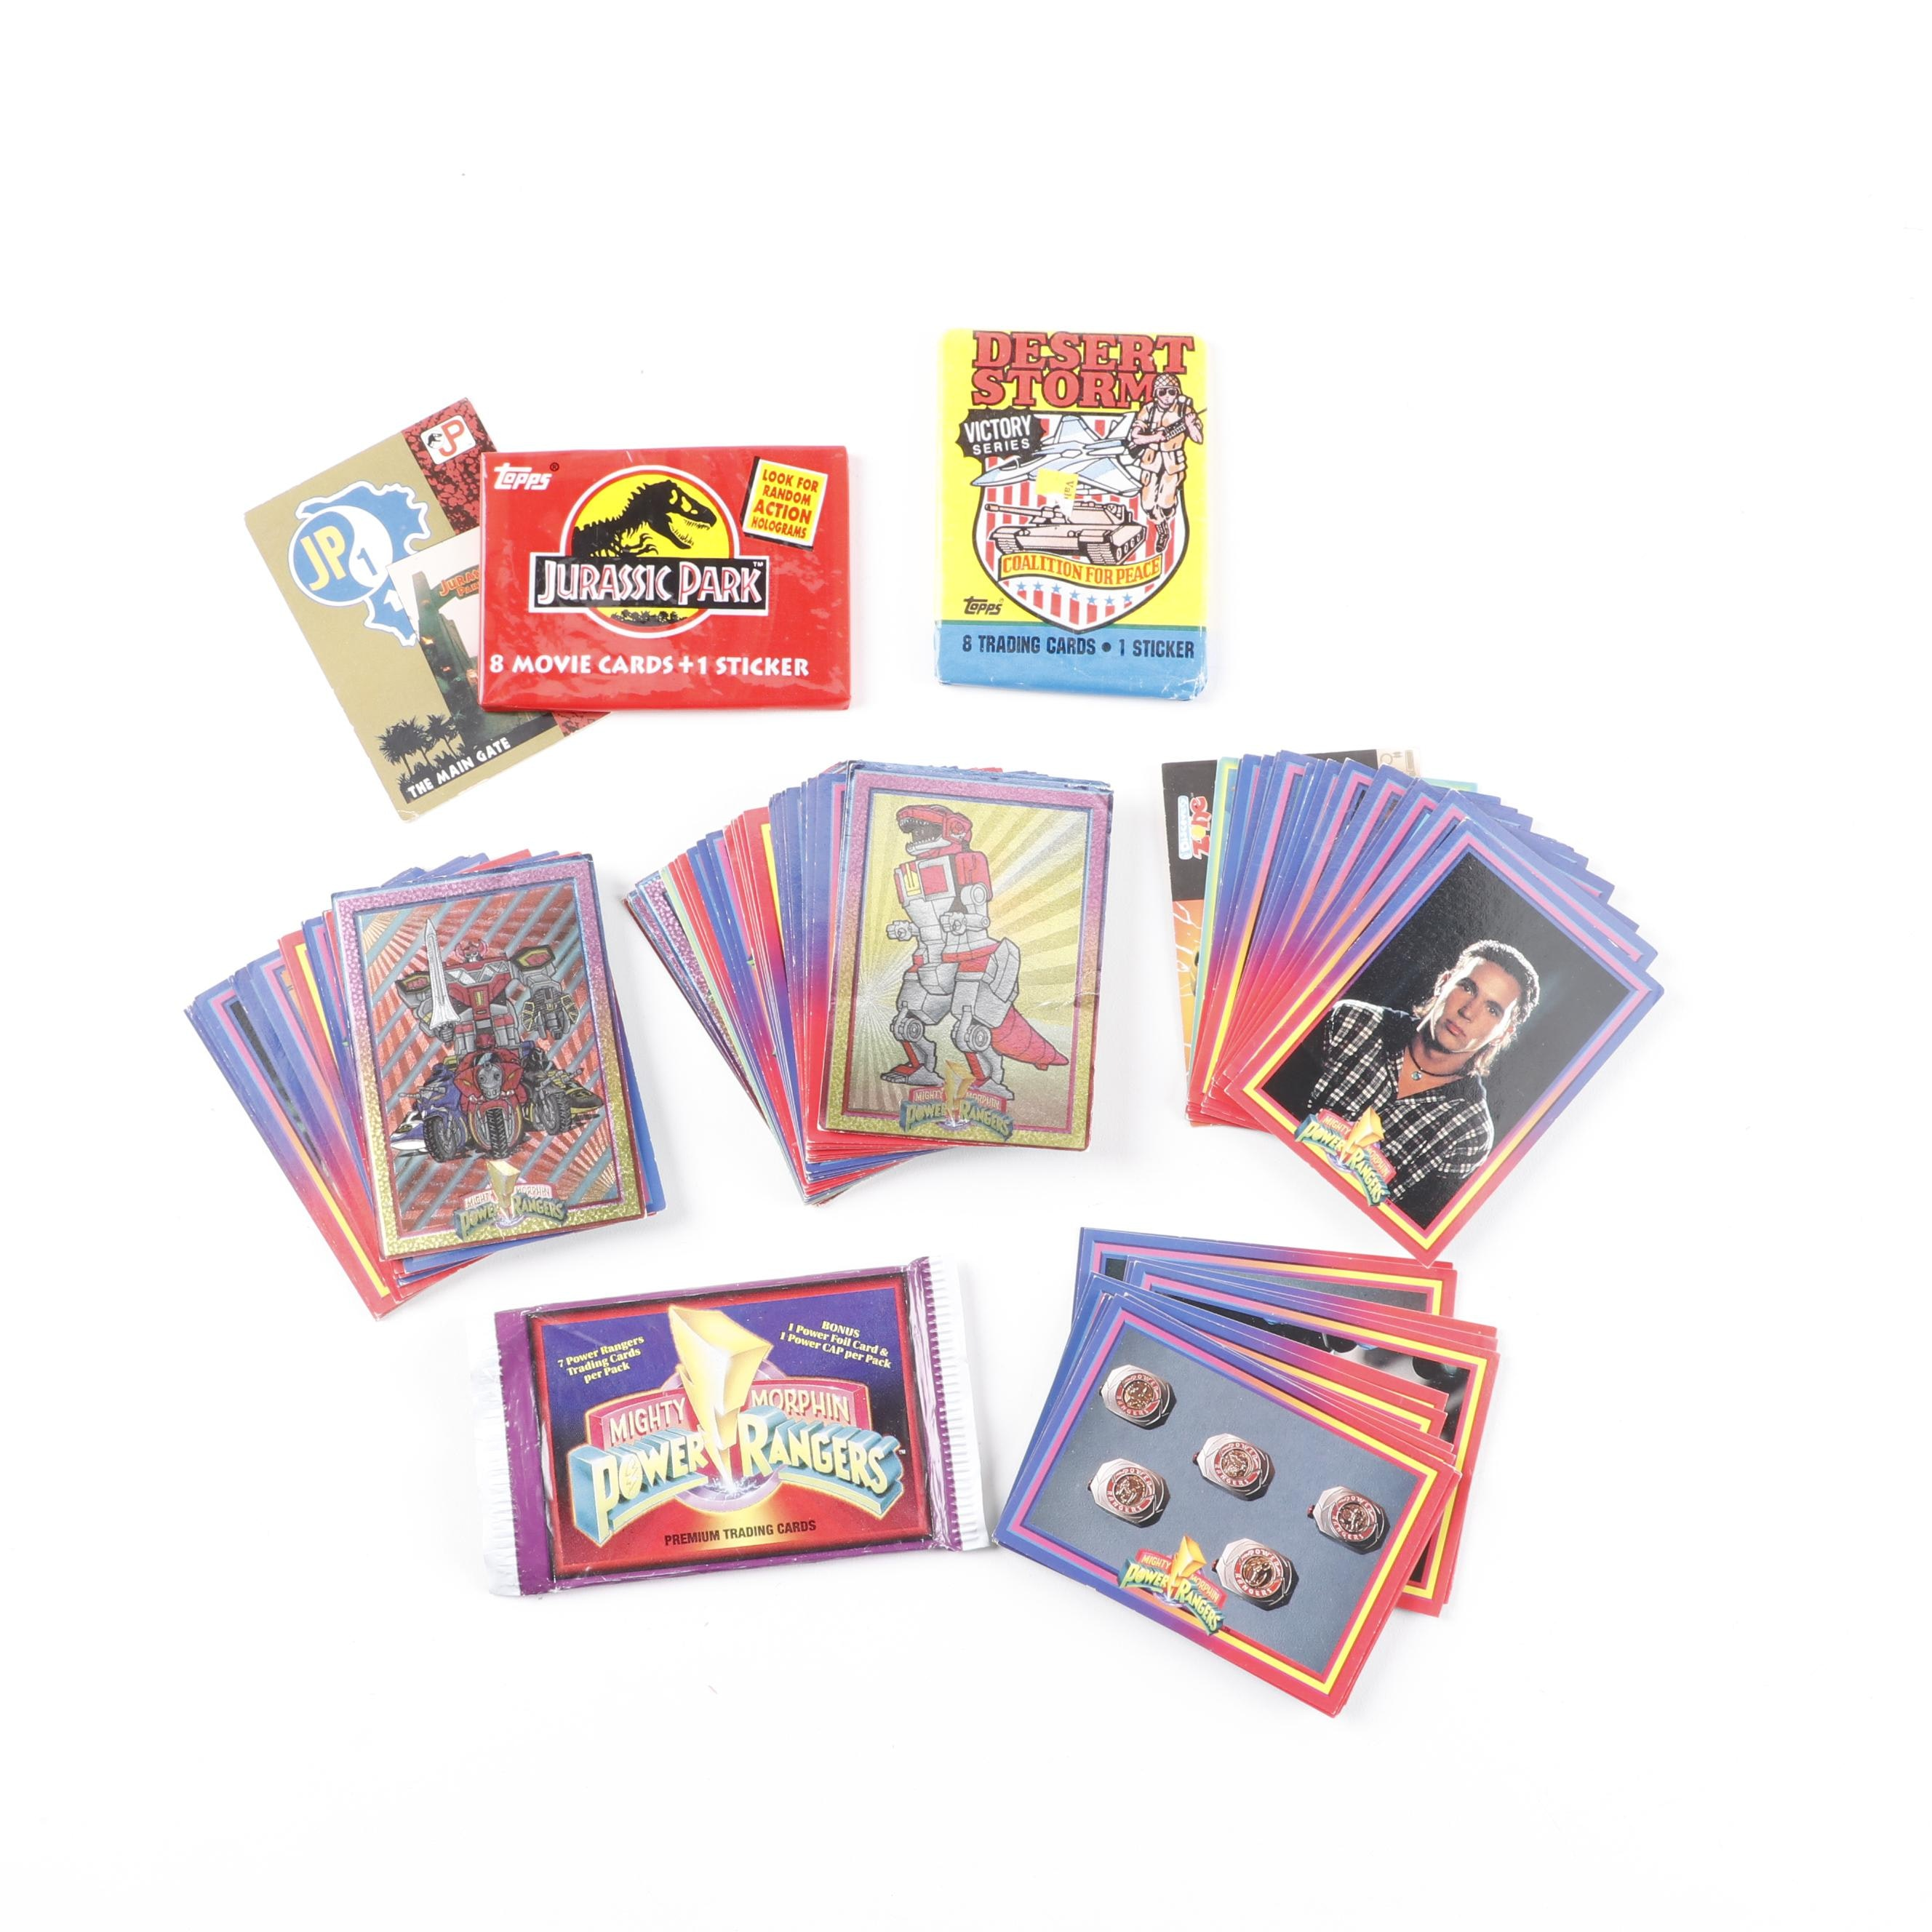 Mighty Morphin Power Rangers, Jurassic Park and Other Trading Cards, 1990s